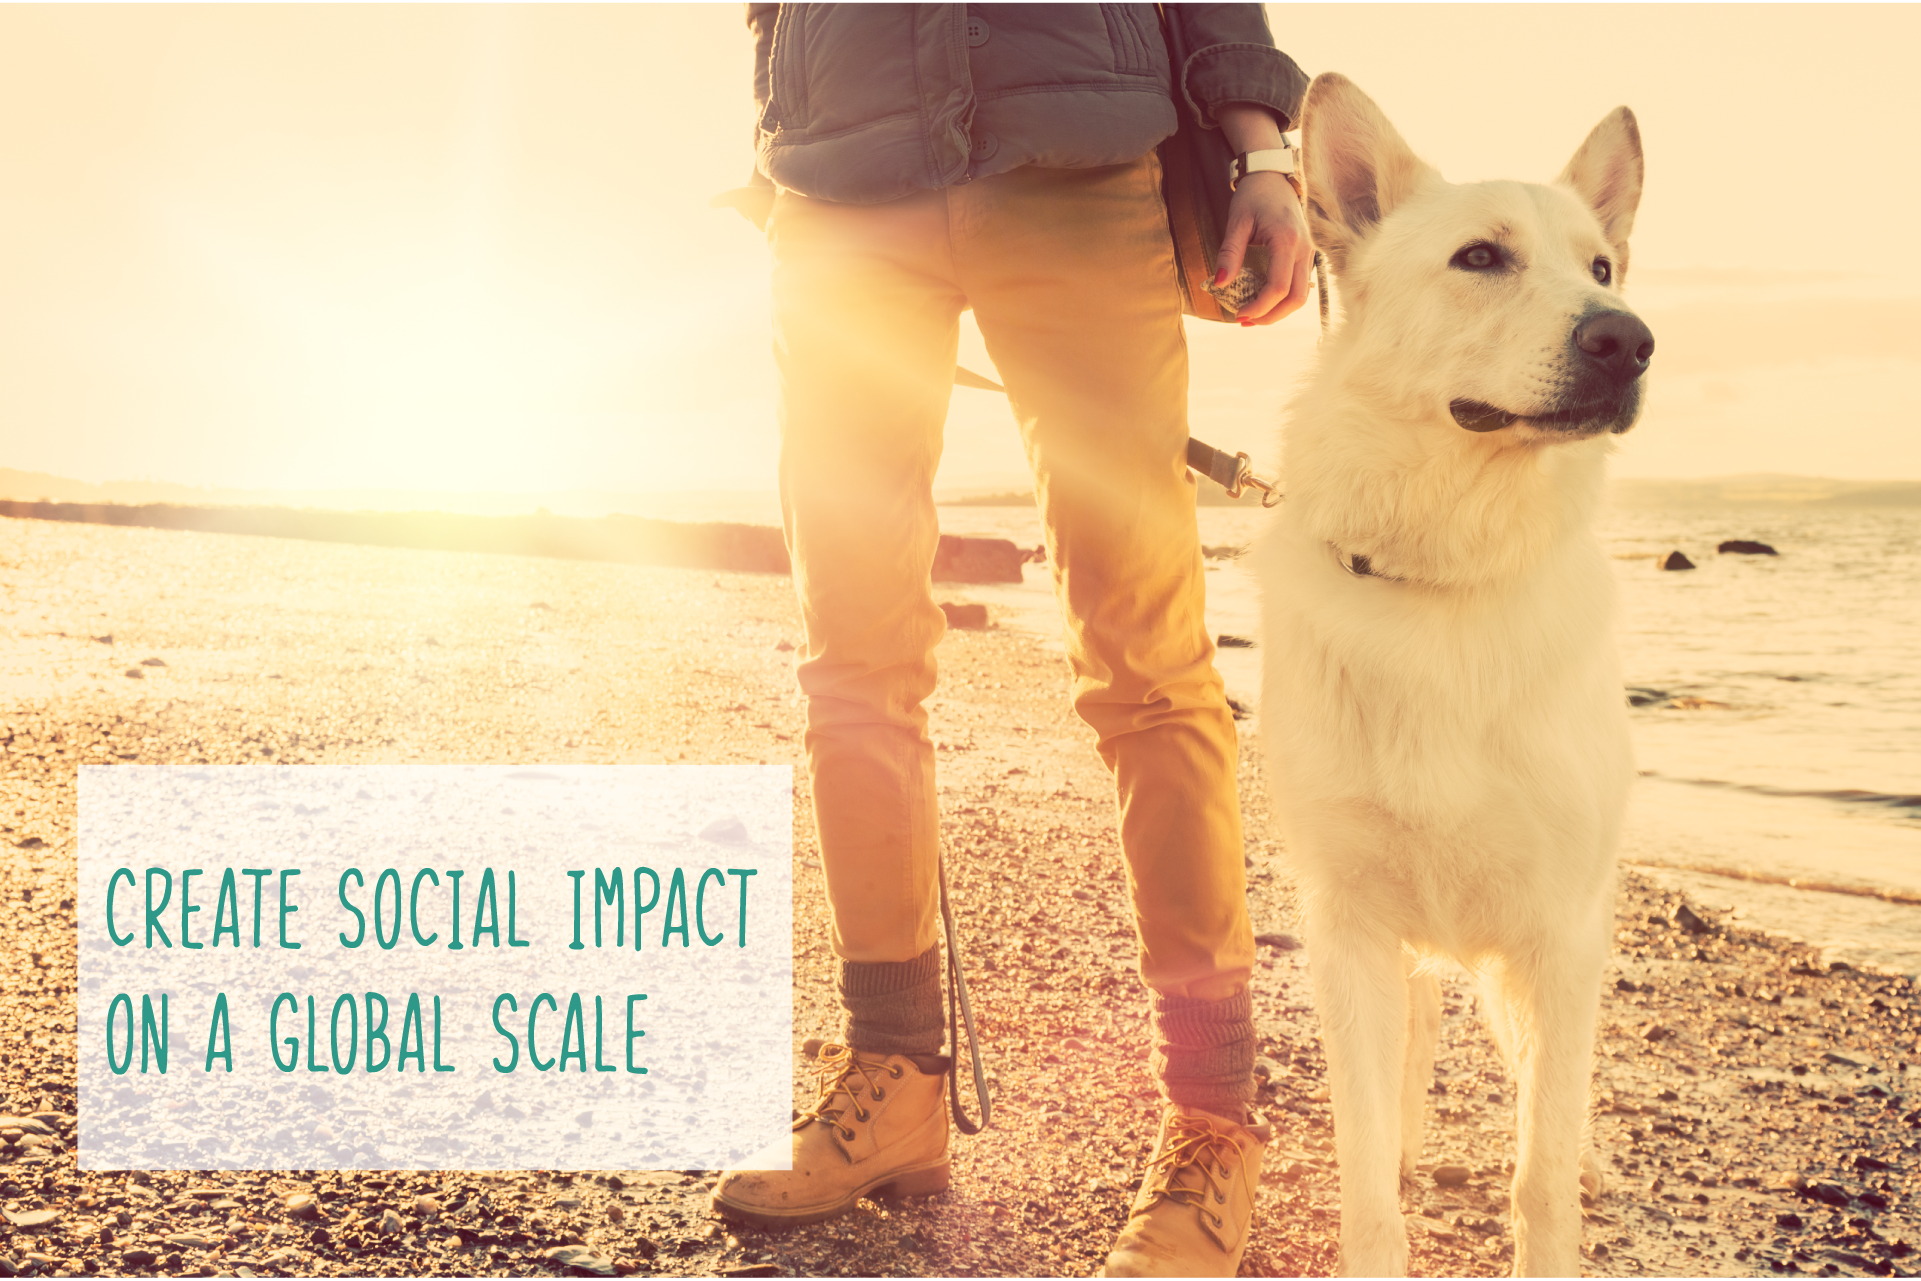 Create-Social-Impact-Home-Page-Banner-01.png